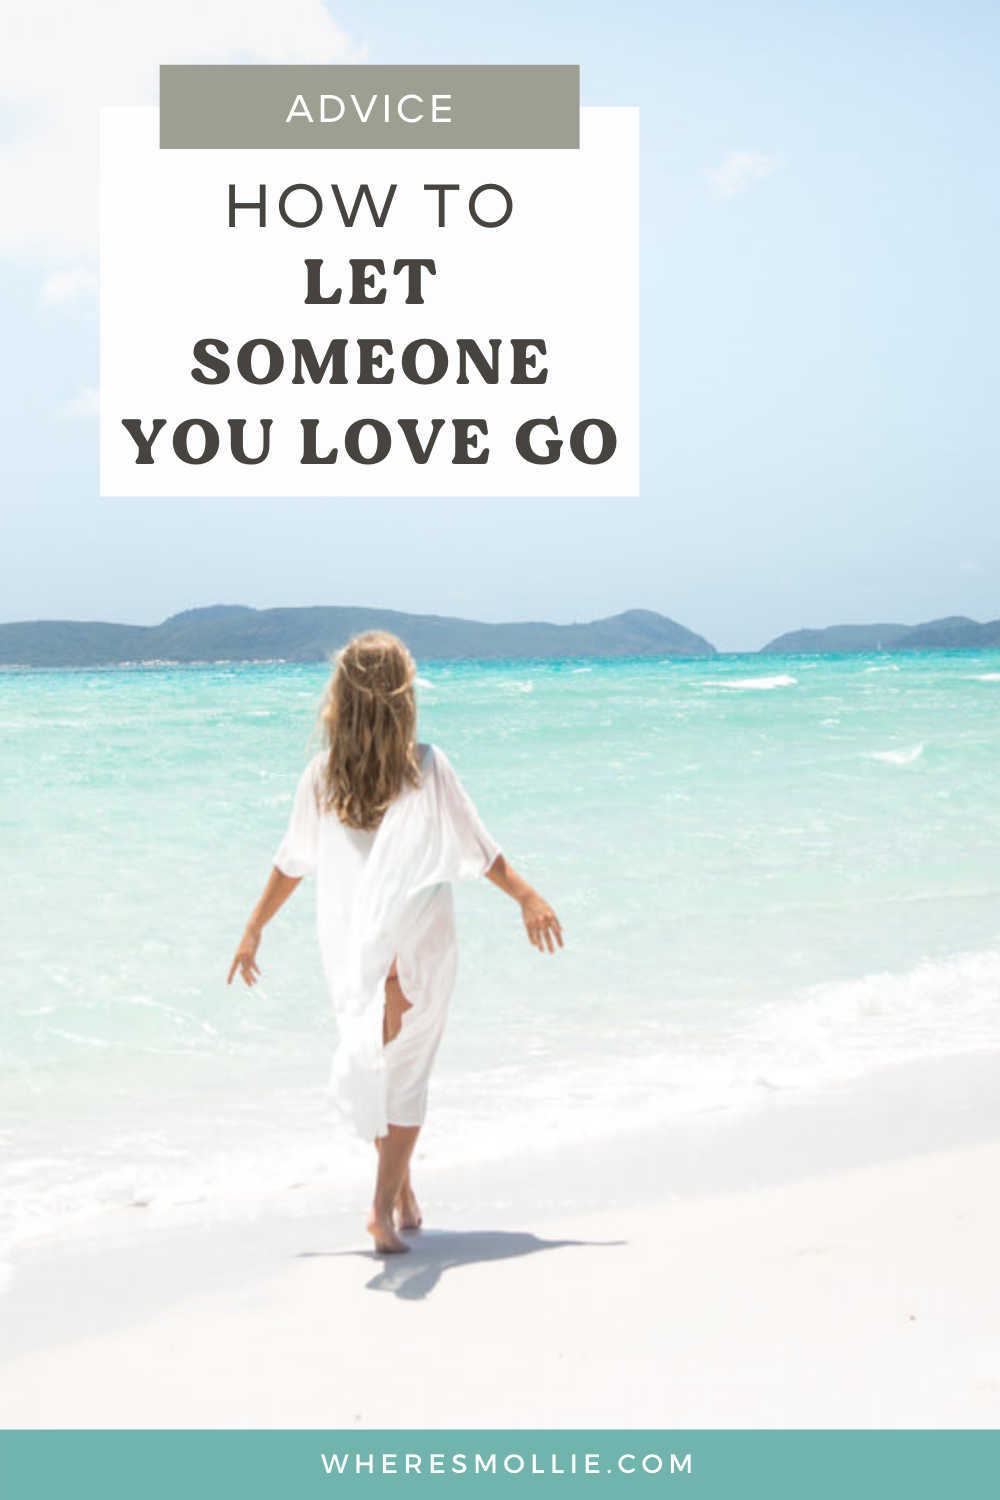 How to let someone you love go and move through heartbreak